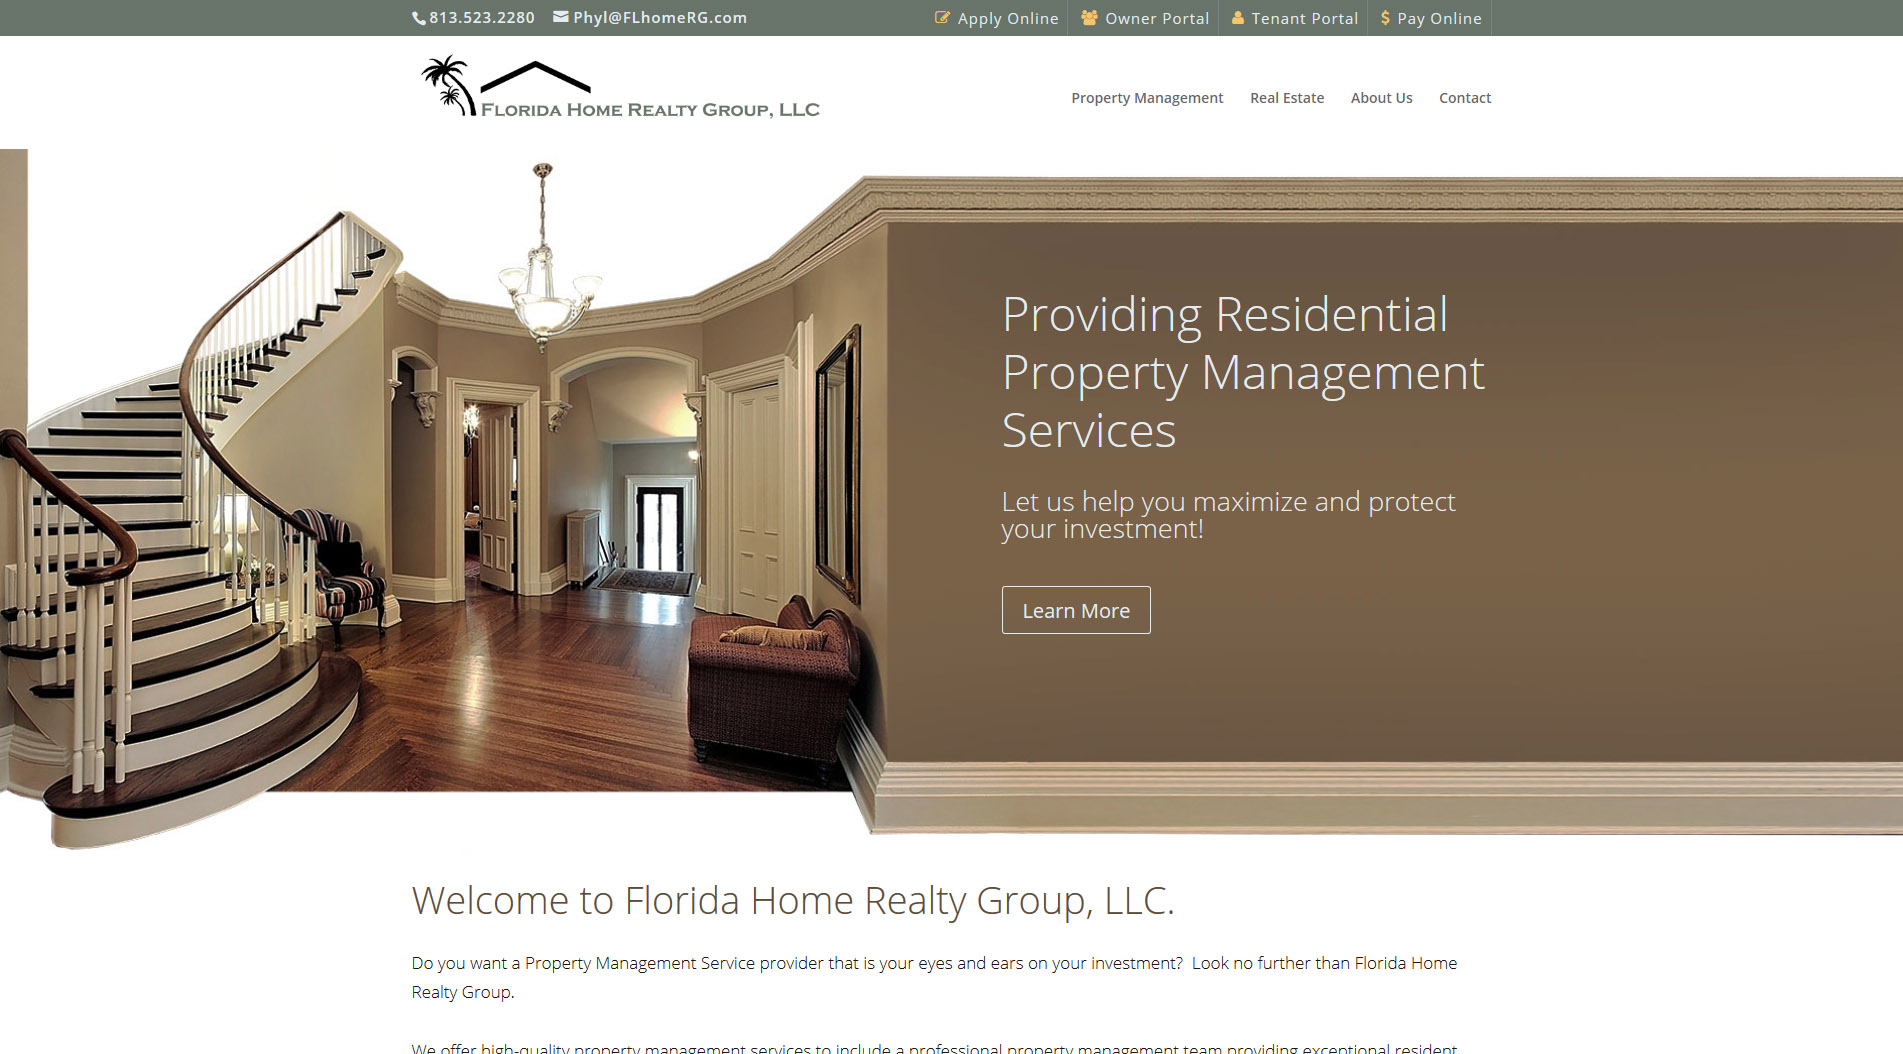 florida_home_realty_group_providing_residential_property_management_services_in_tampa_florida_-_2017-01-12_14-48-18